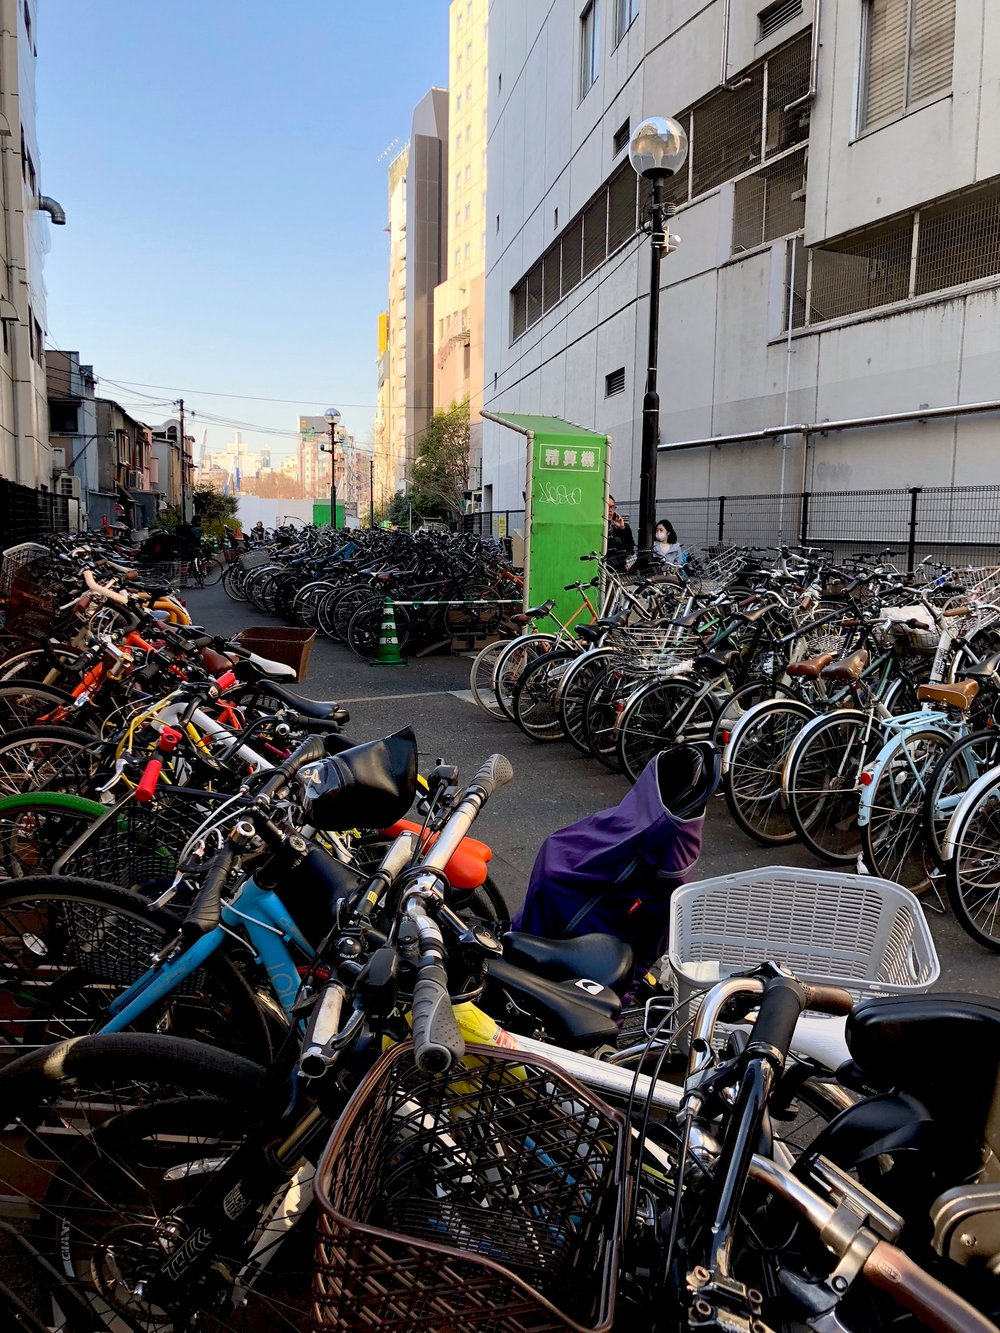 Near Shibuya Crossing, we had never seen so many bikes parked somewhere before - most without any locks!